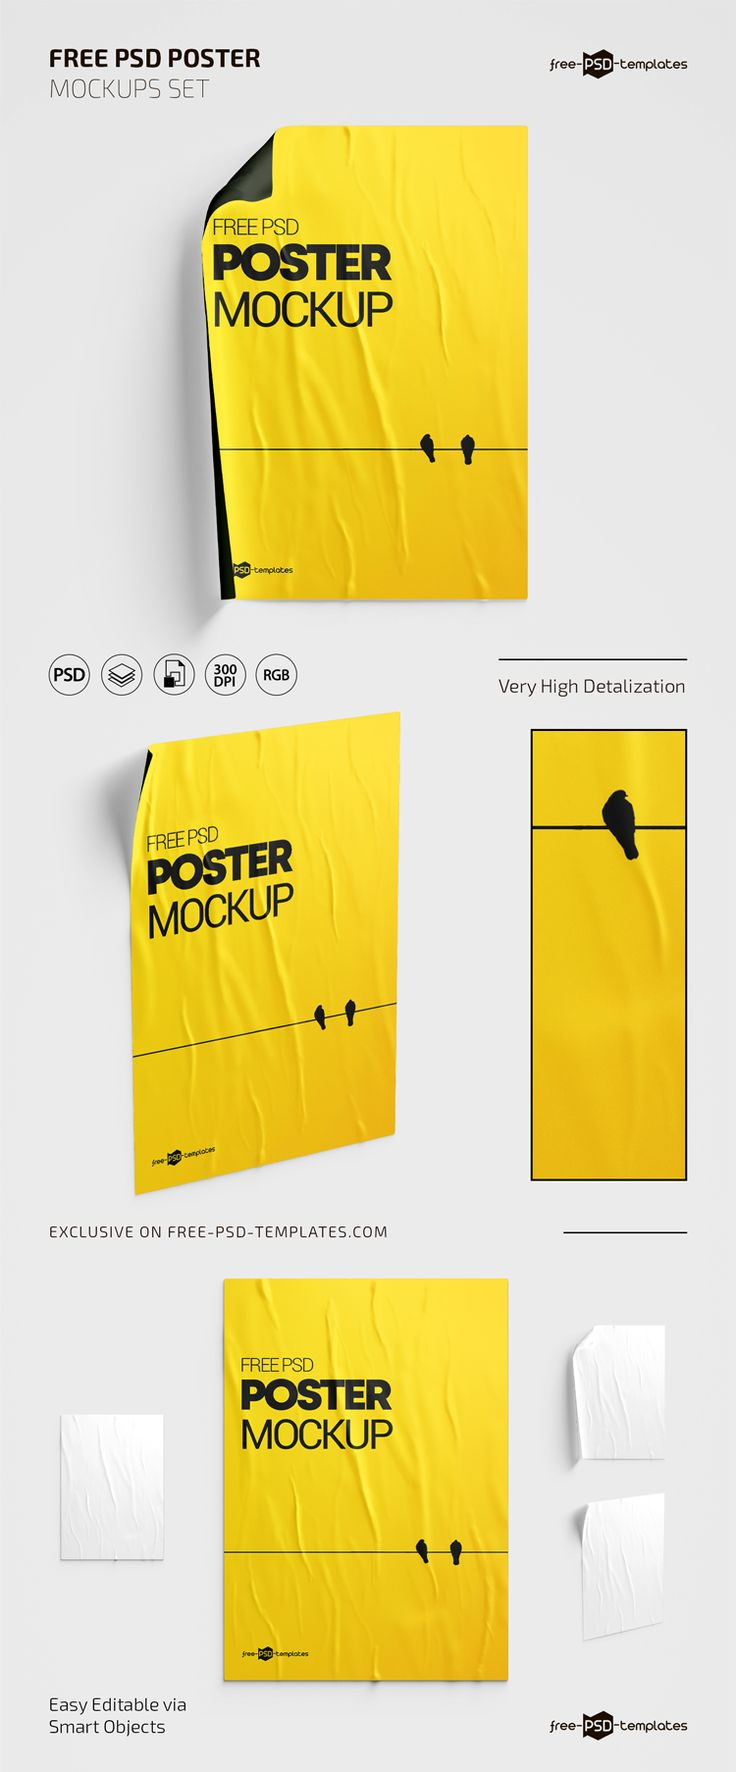 3 Free Poster Psd Mockups Templates Free Psd Templates Mockup Template Free Mockup Template Psd Mockup Template